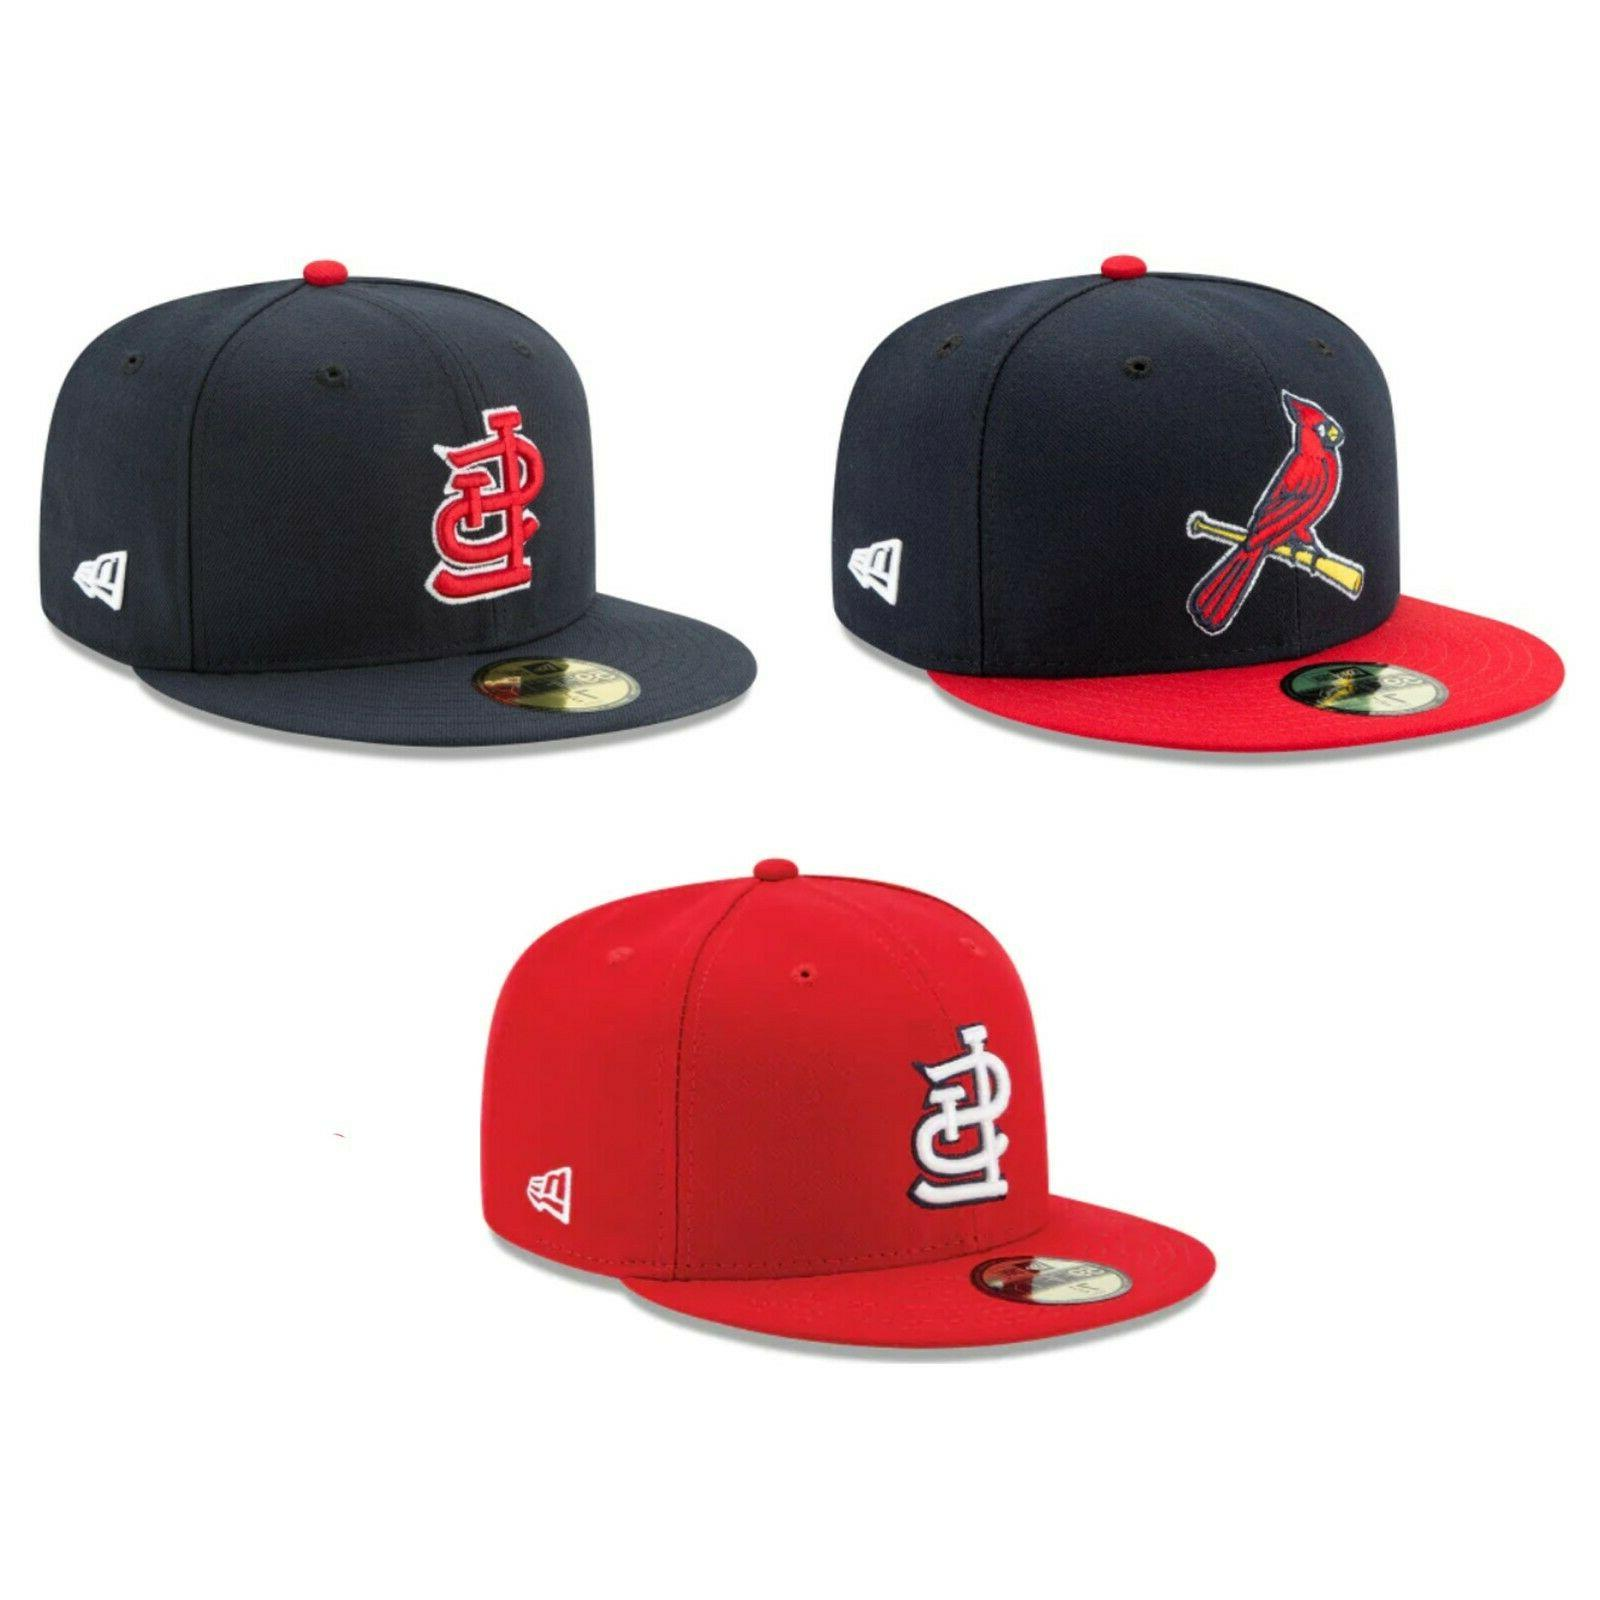 St. Louis Cardinals STL MLB Authentic New Era 59FIFTY Fitted